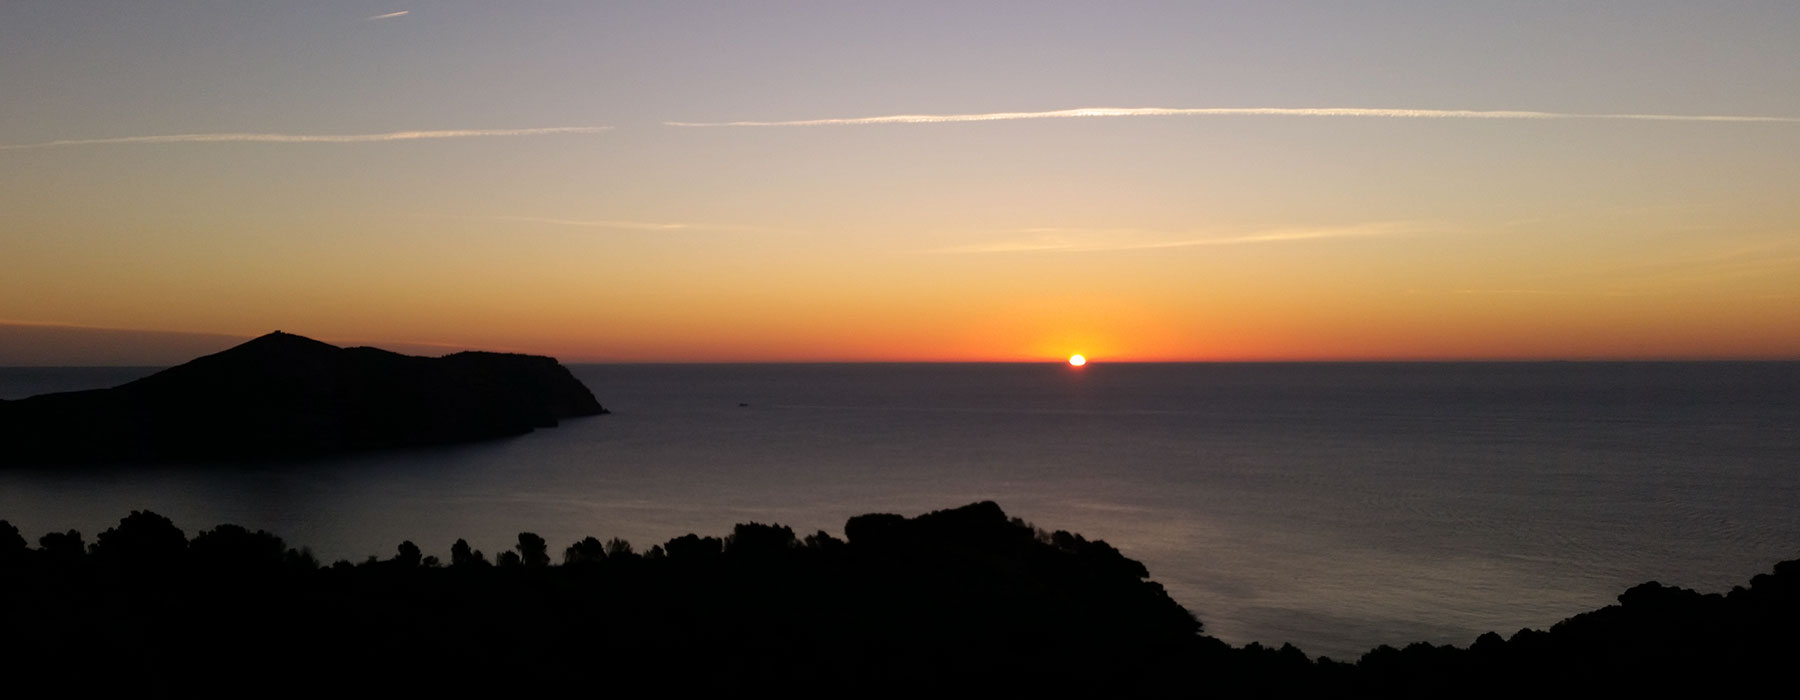 cala-montjoi-sunset-sunrise-banner-home